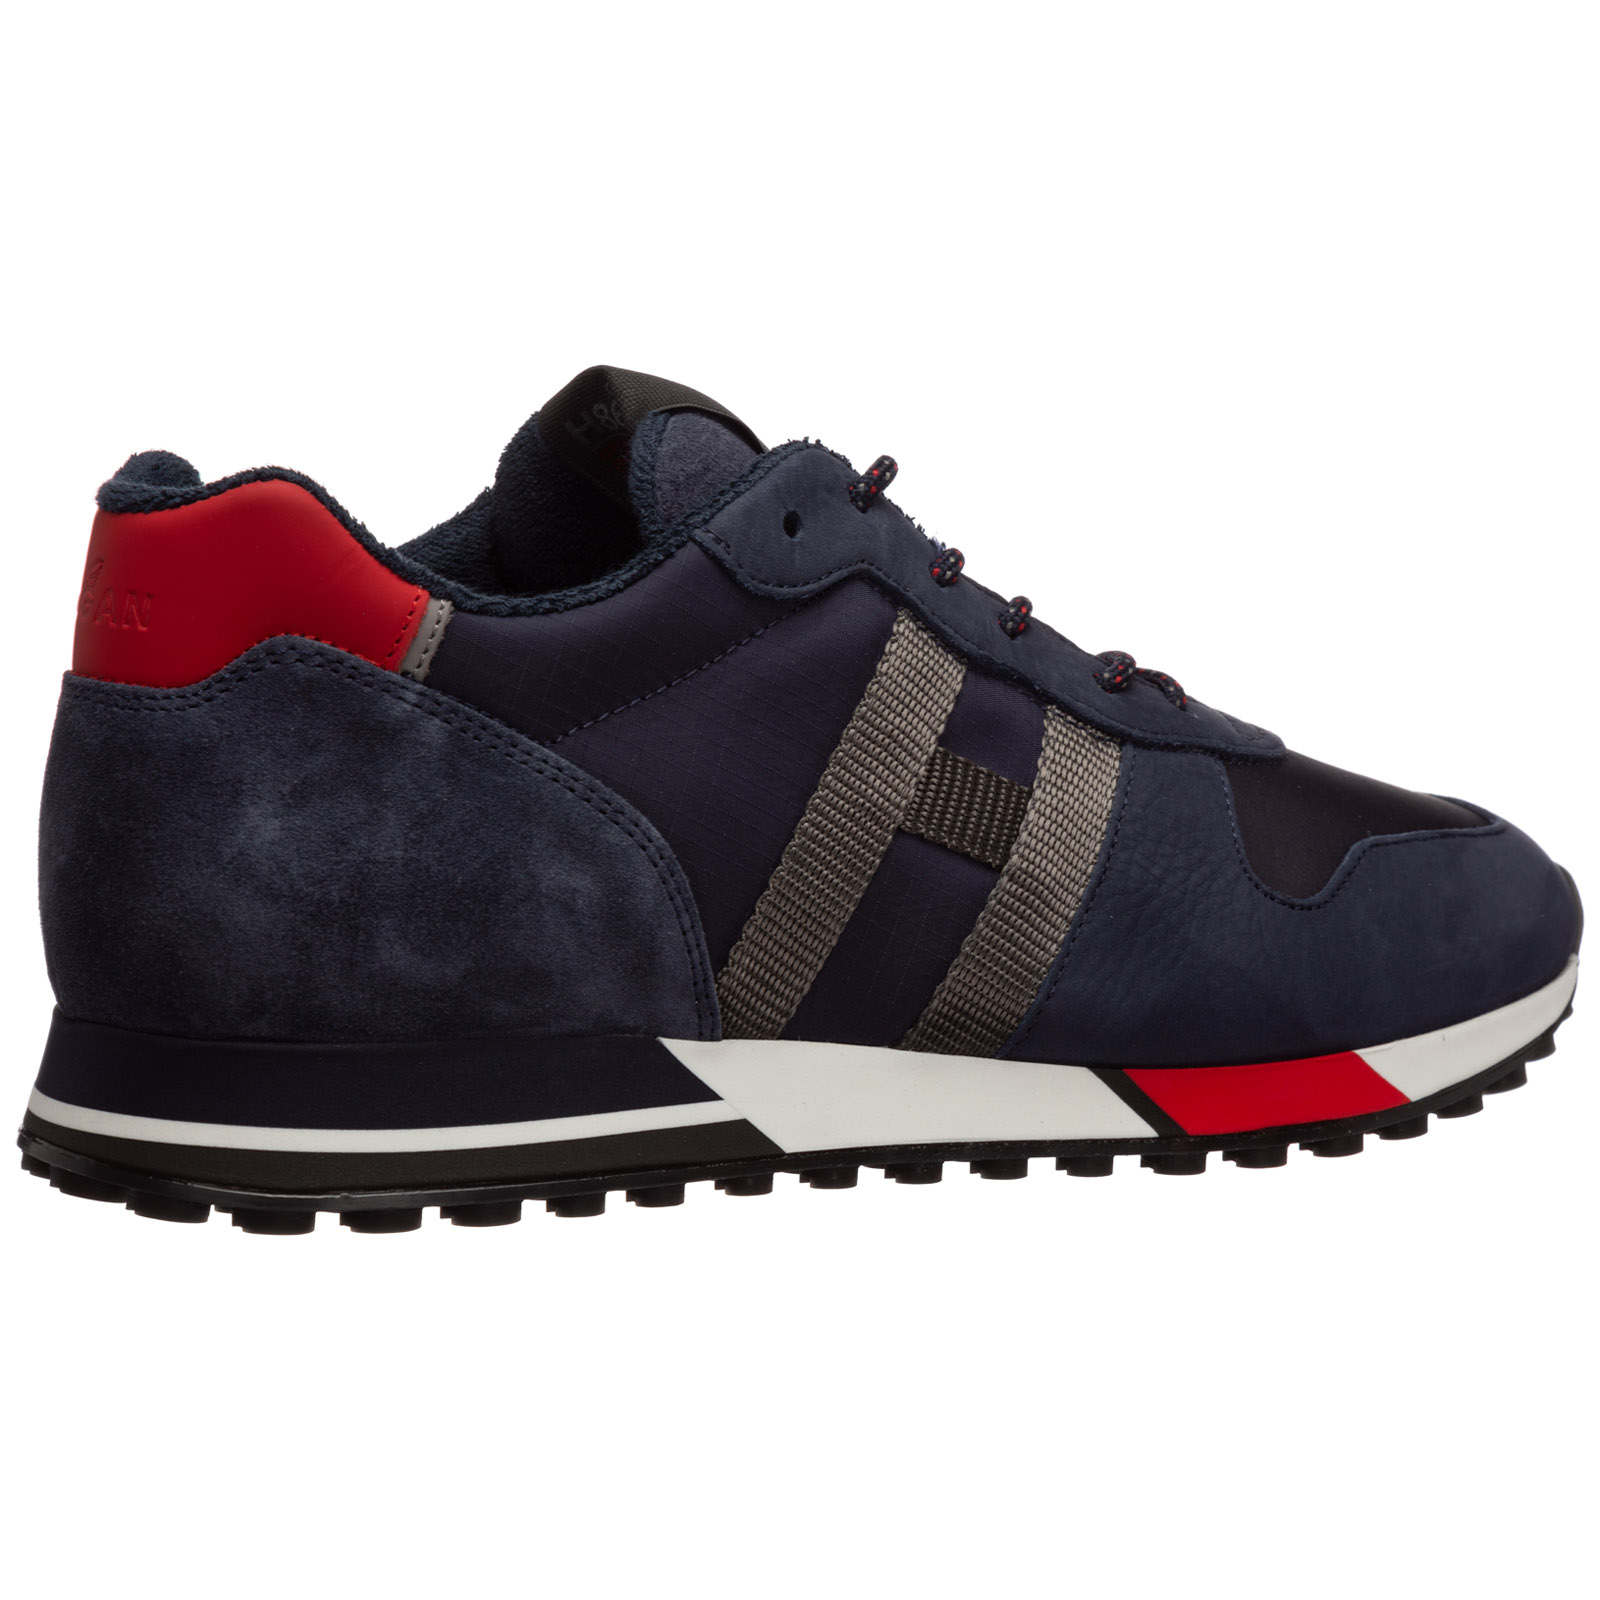 Men's shoes leather trainers sneakers h383